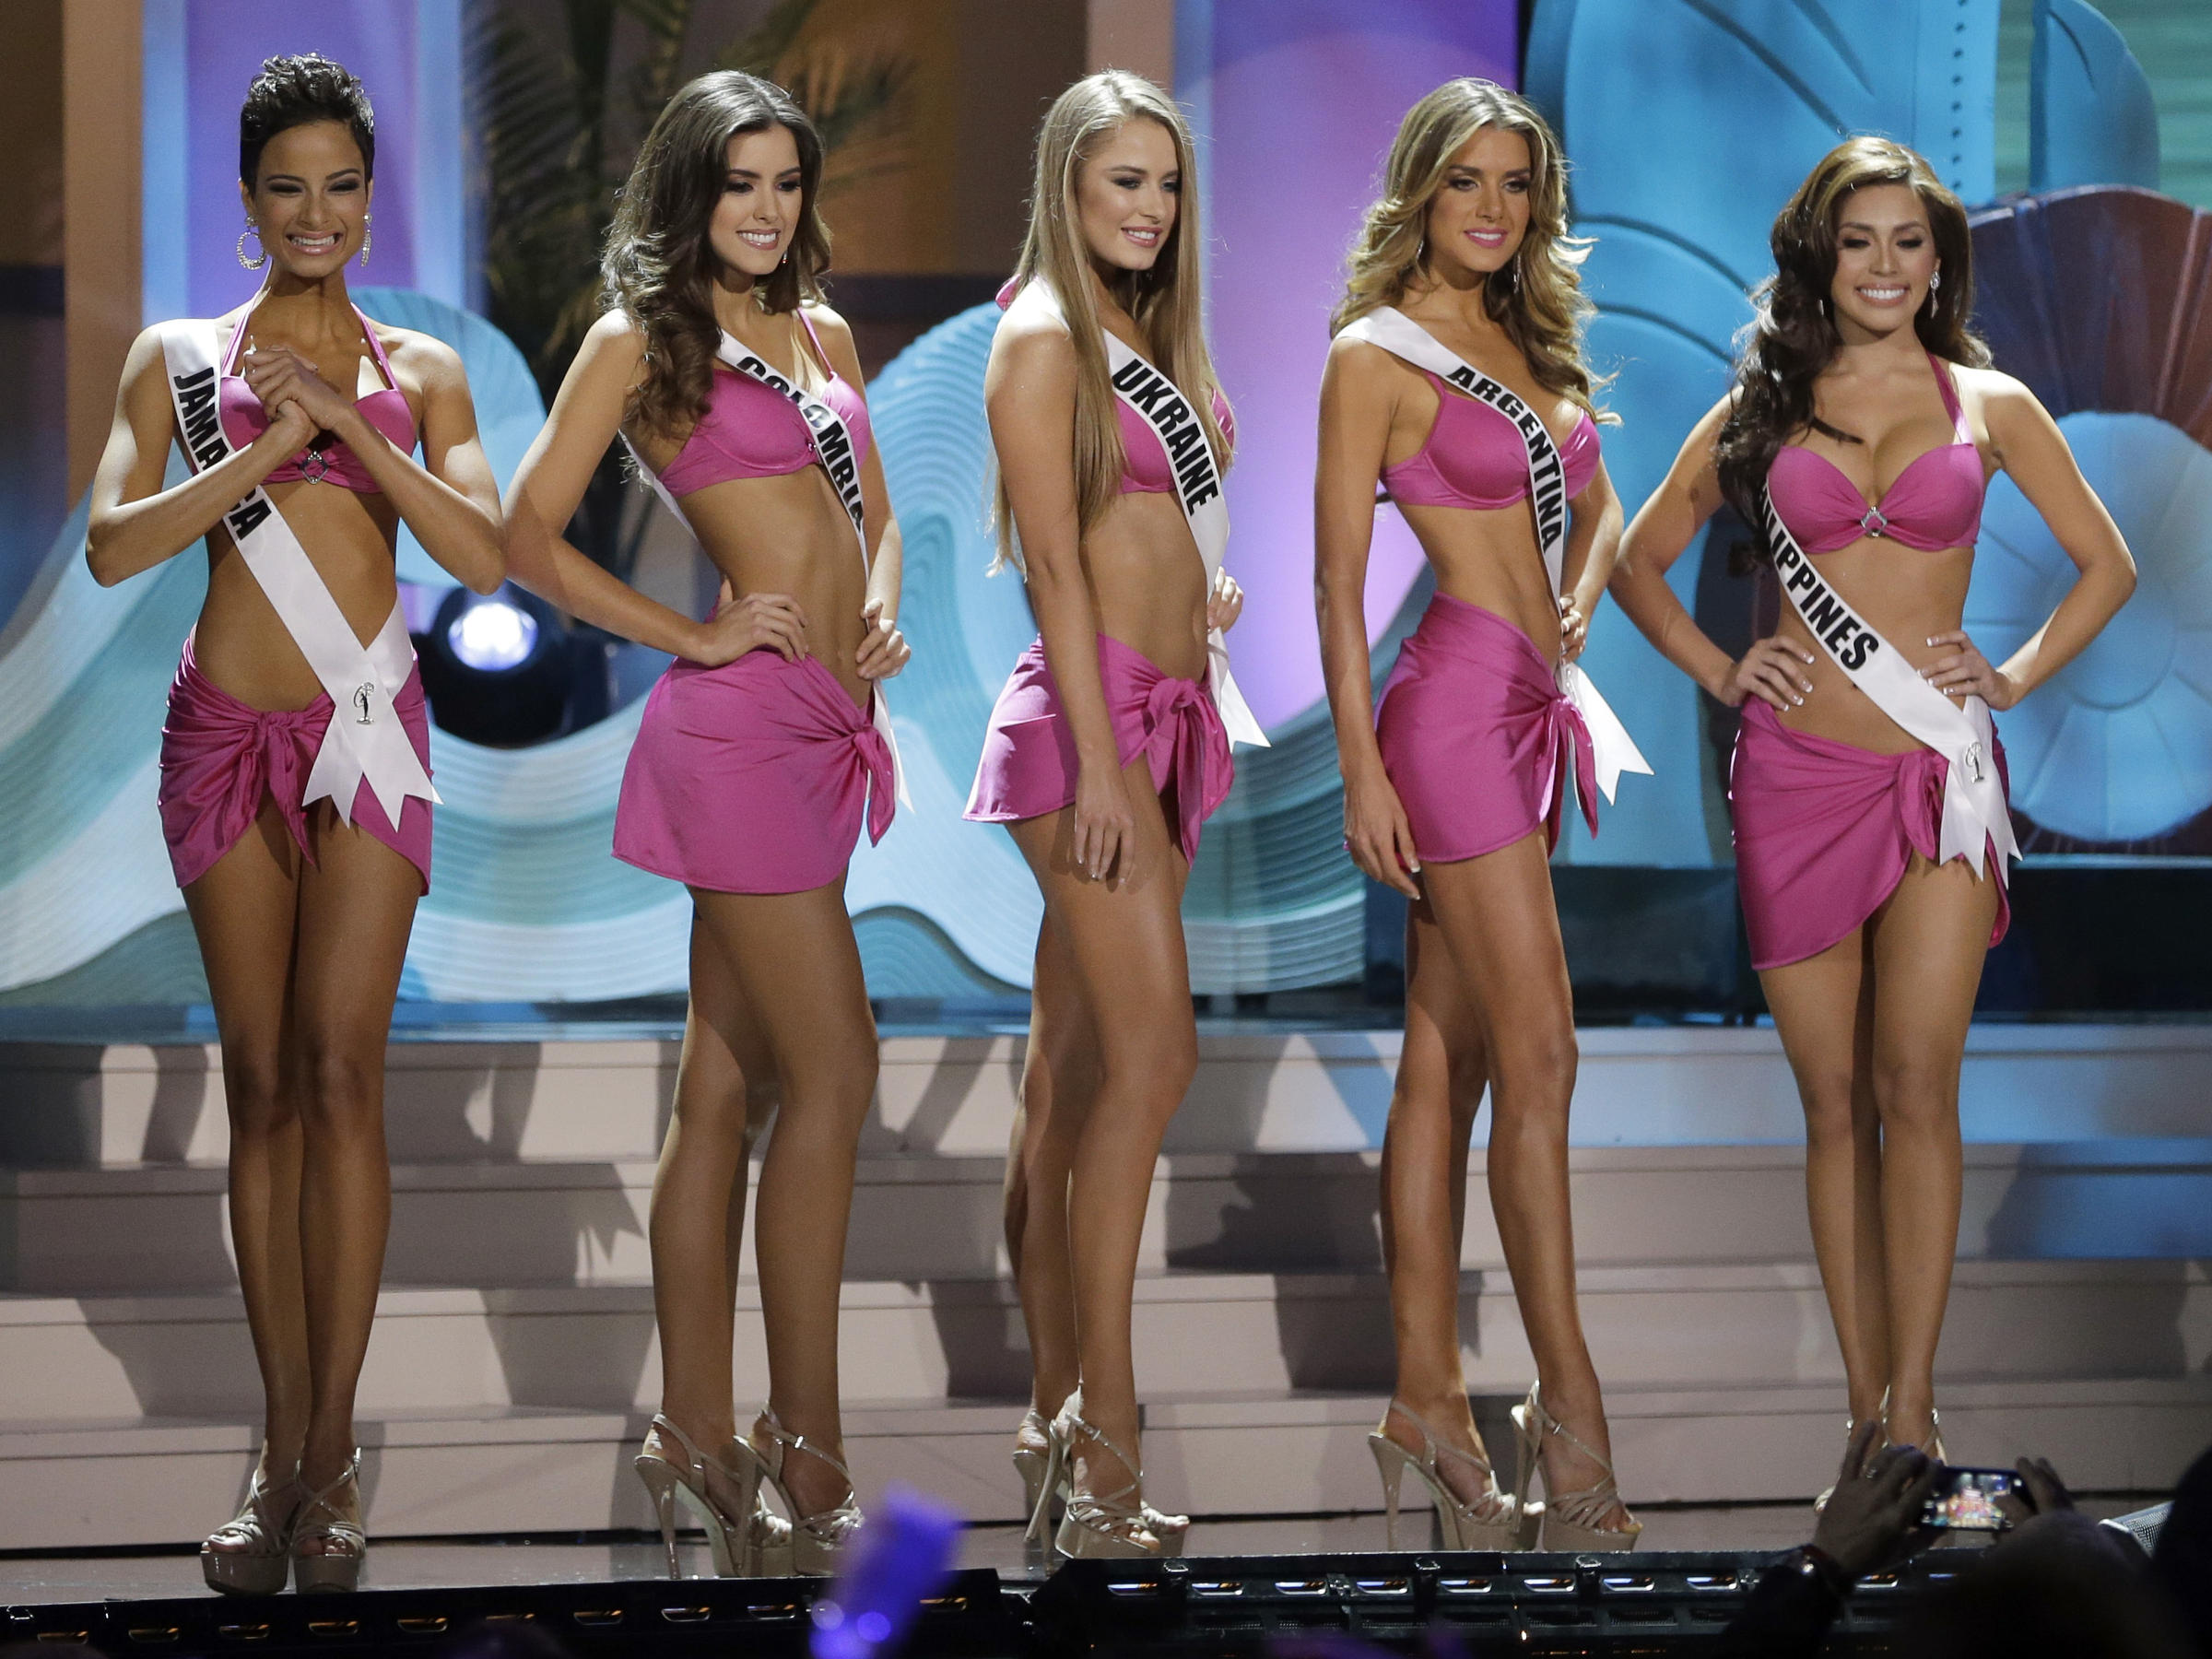 Critics Suggested That Most Of This Year's Miss Universe Finalists  Conformed To A European Standard Of Beauty, Even Though The Contestants  Represented 88